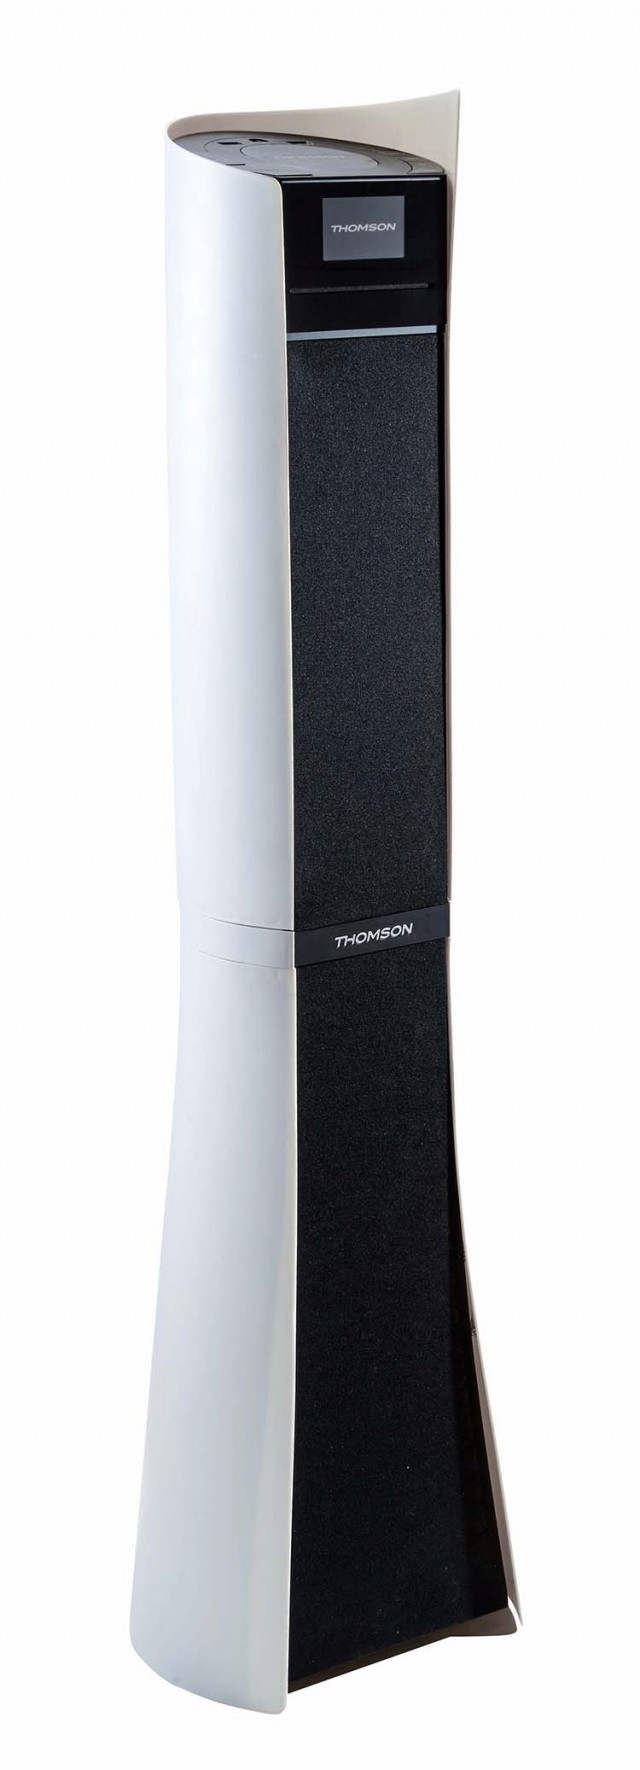 THOMSON Multimedia Tower Ribbon - Packshot